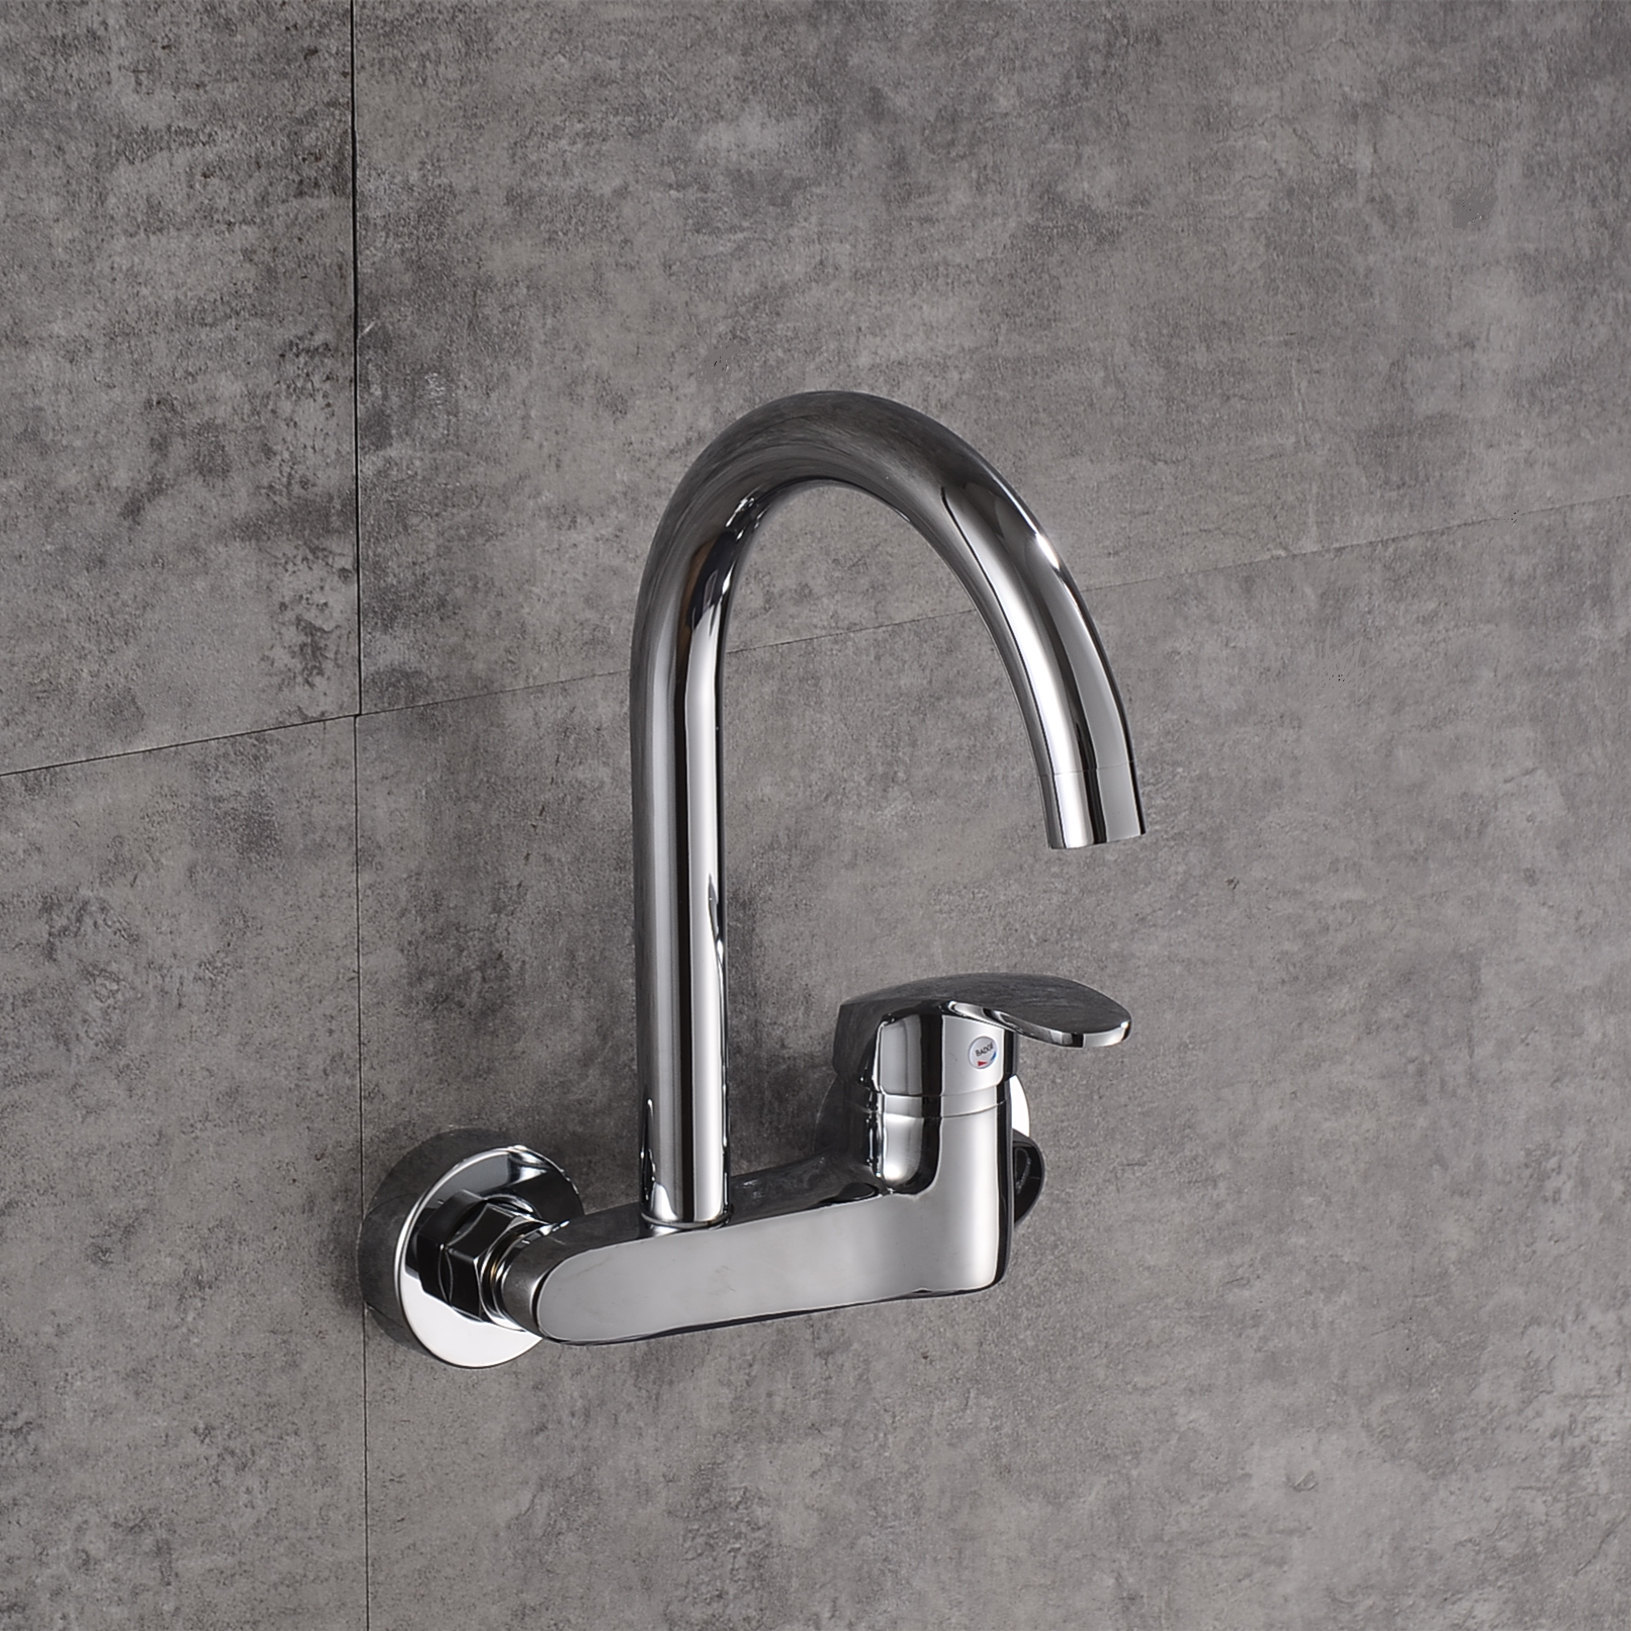 Abba Plumbing Kitchen Rotary Kitchen Faucet Wall Two Lian Leng Thermal Mixing Faucet Balcony Wall-Mounted Leading